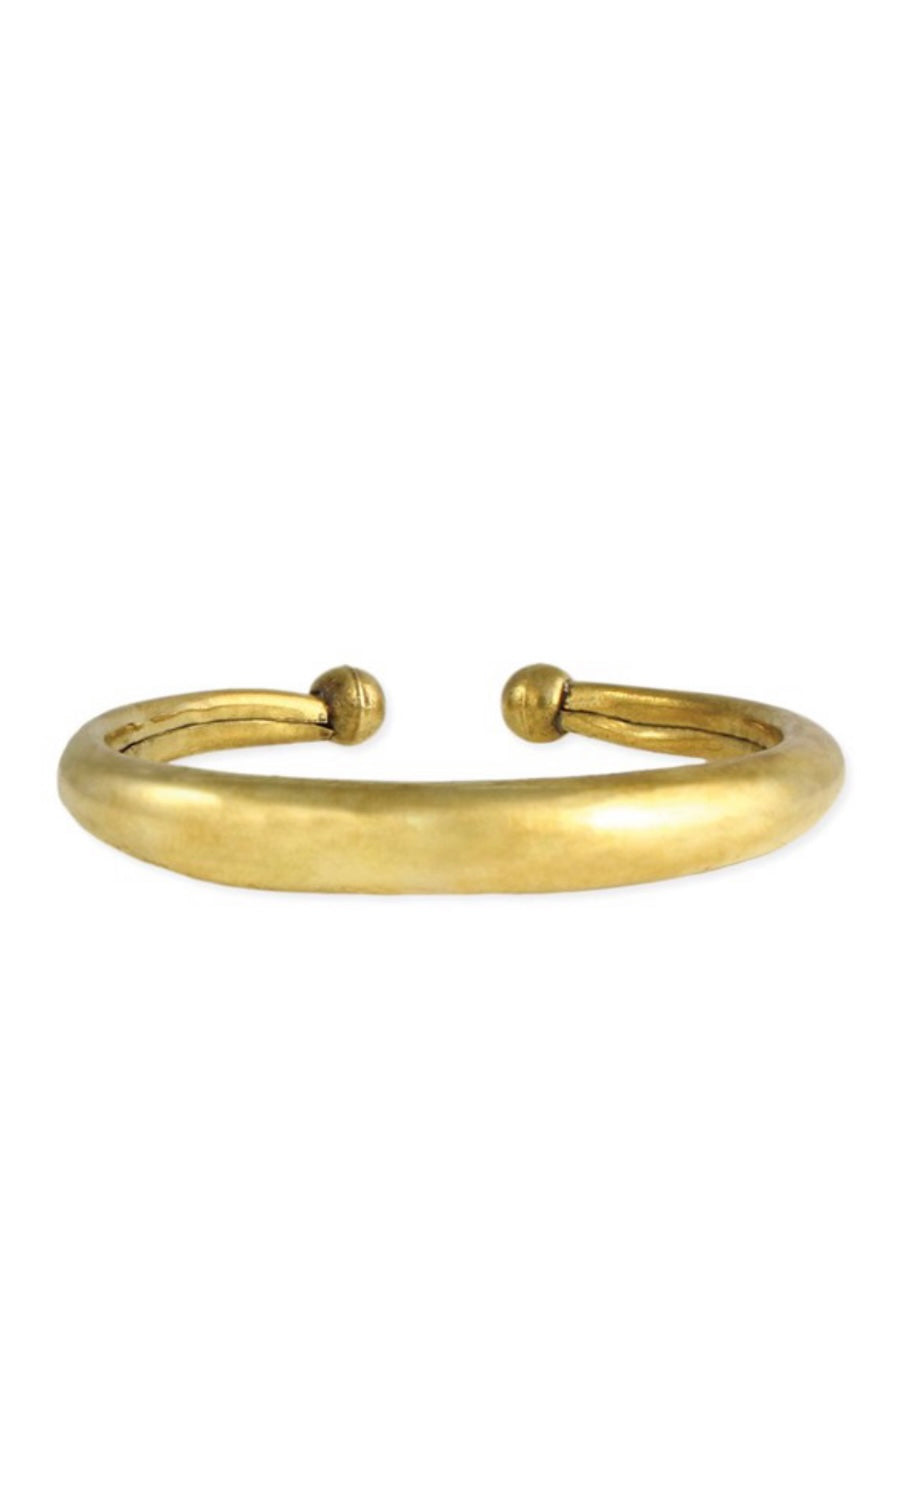 Classic Chic Gold Hollow Cuff Bracelet